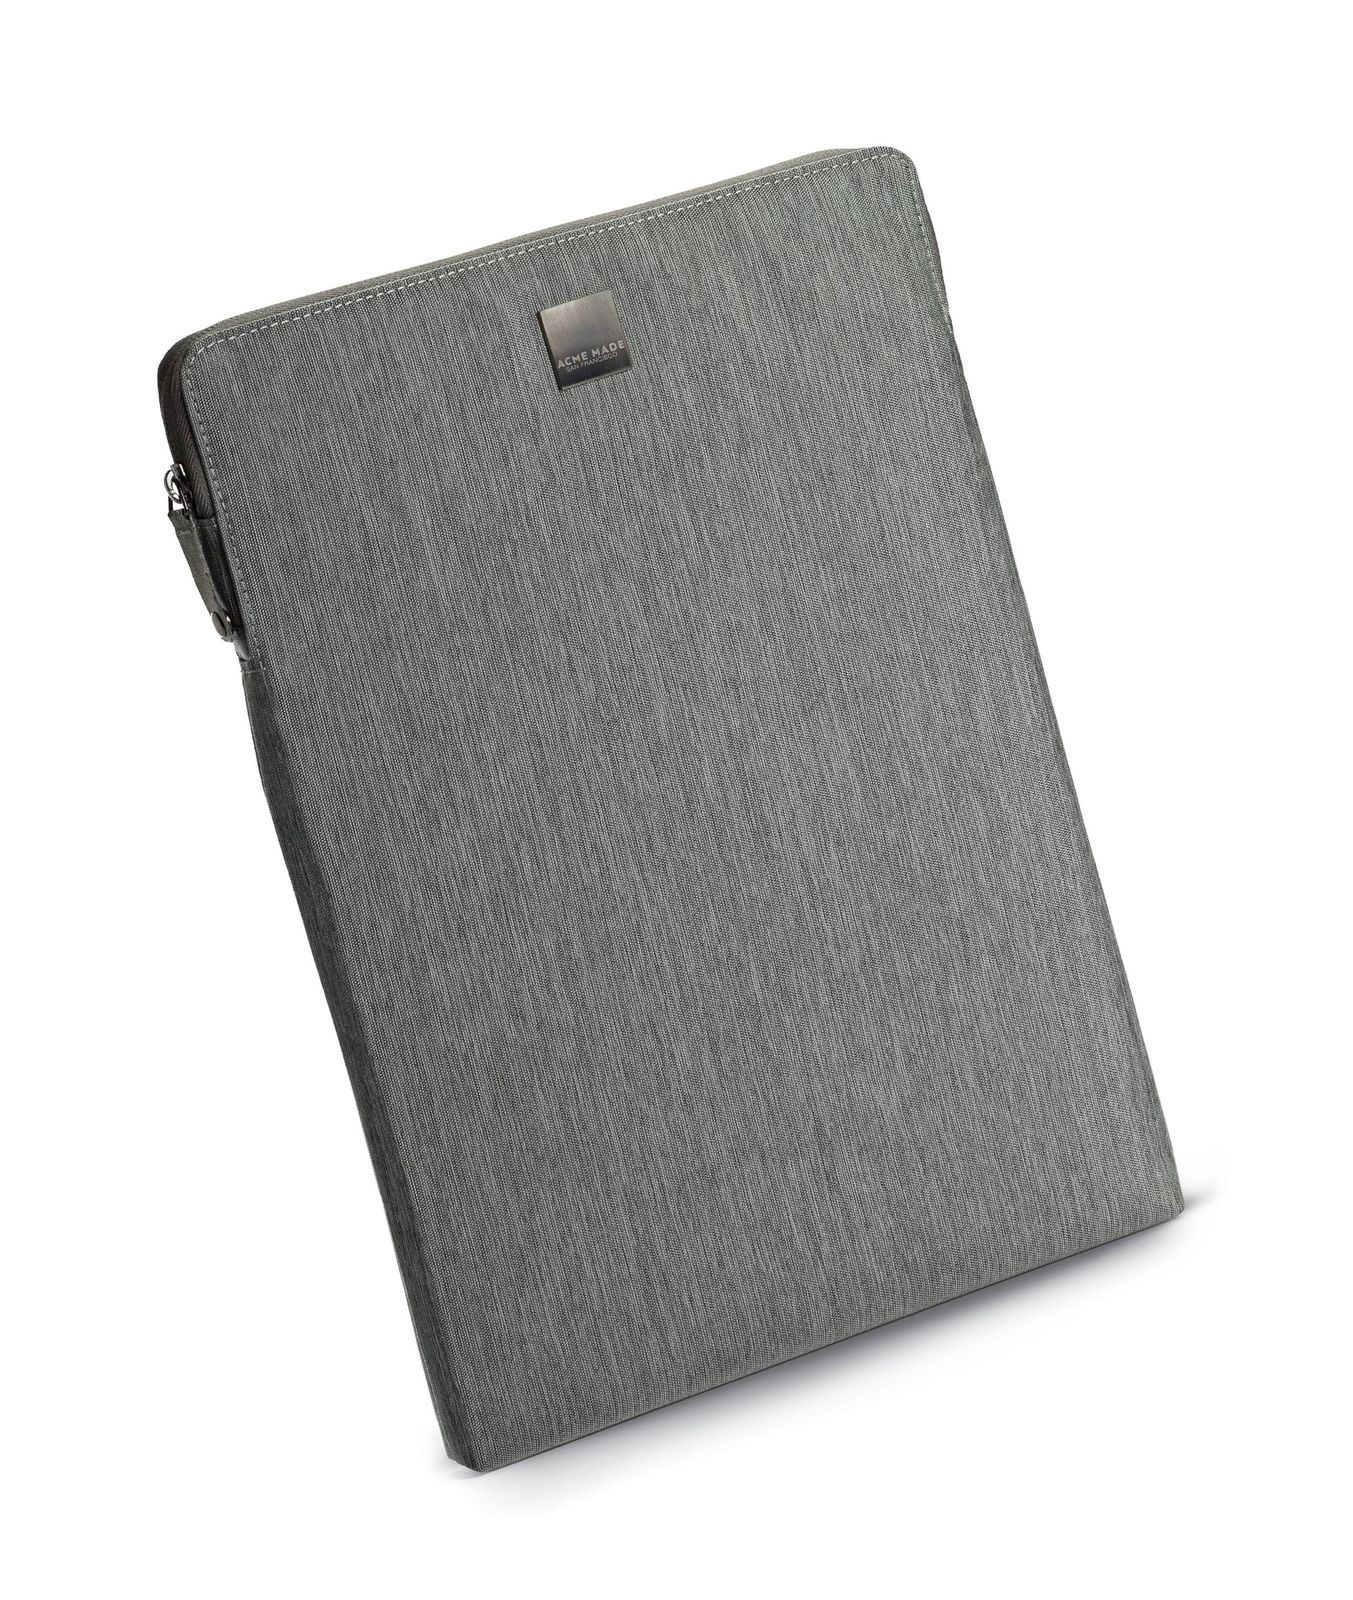 Acme Made Montgomery Street Sleeve for 13-inch laptops (Grey) (AM36520) Grey